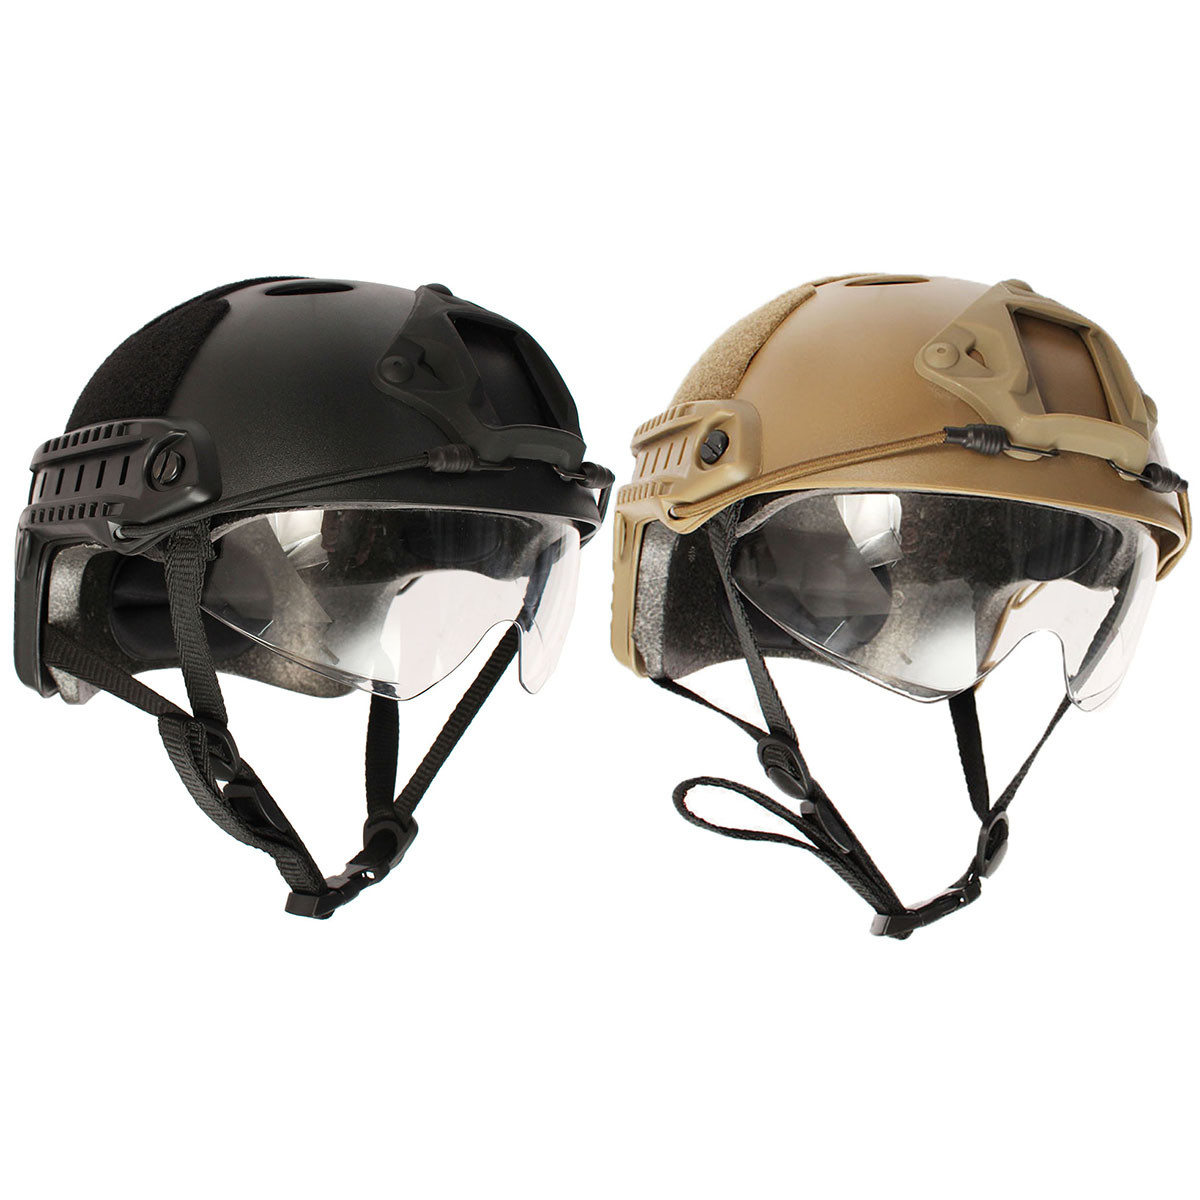 Tactical Airsoft Paintball SWAT War Game Protective Fas